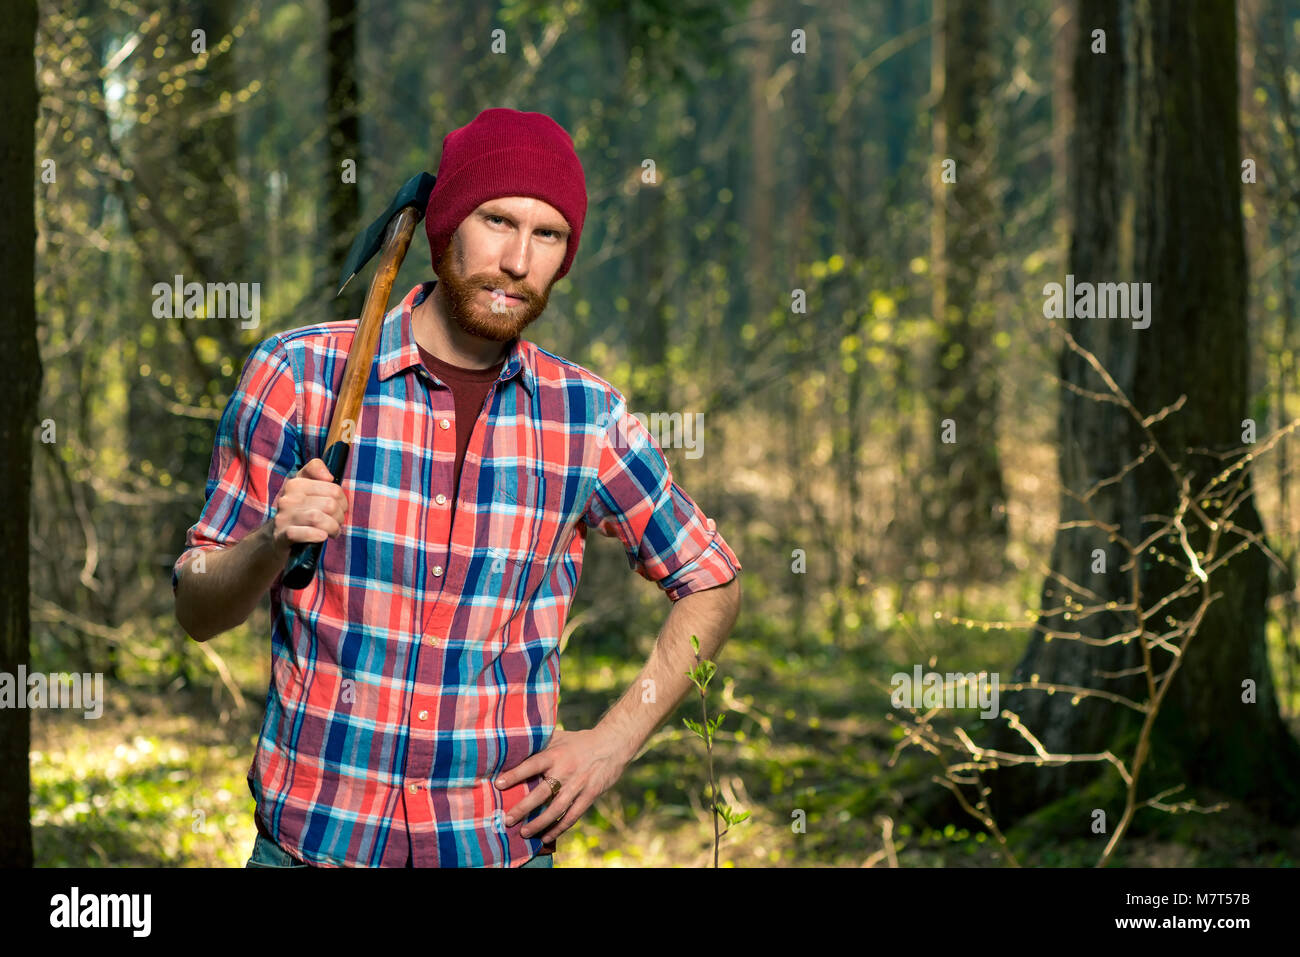 392c3899061 portrait of a forester with a beard and an ax in a shirt in the woods